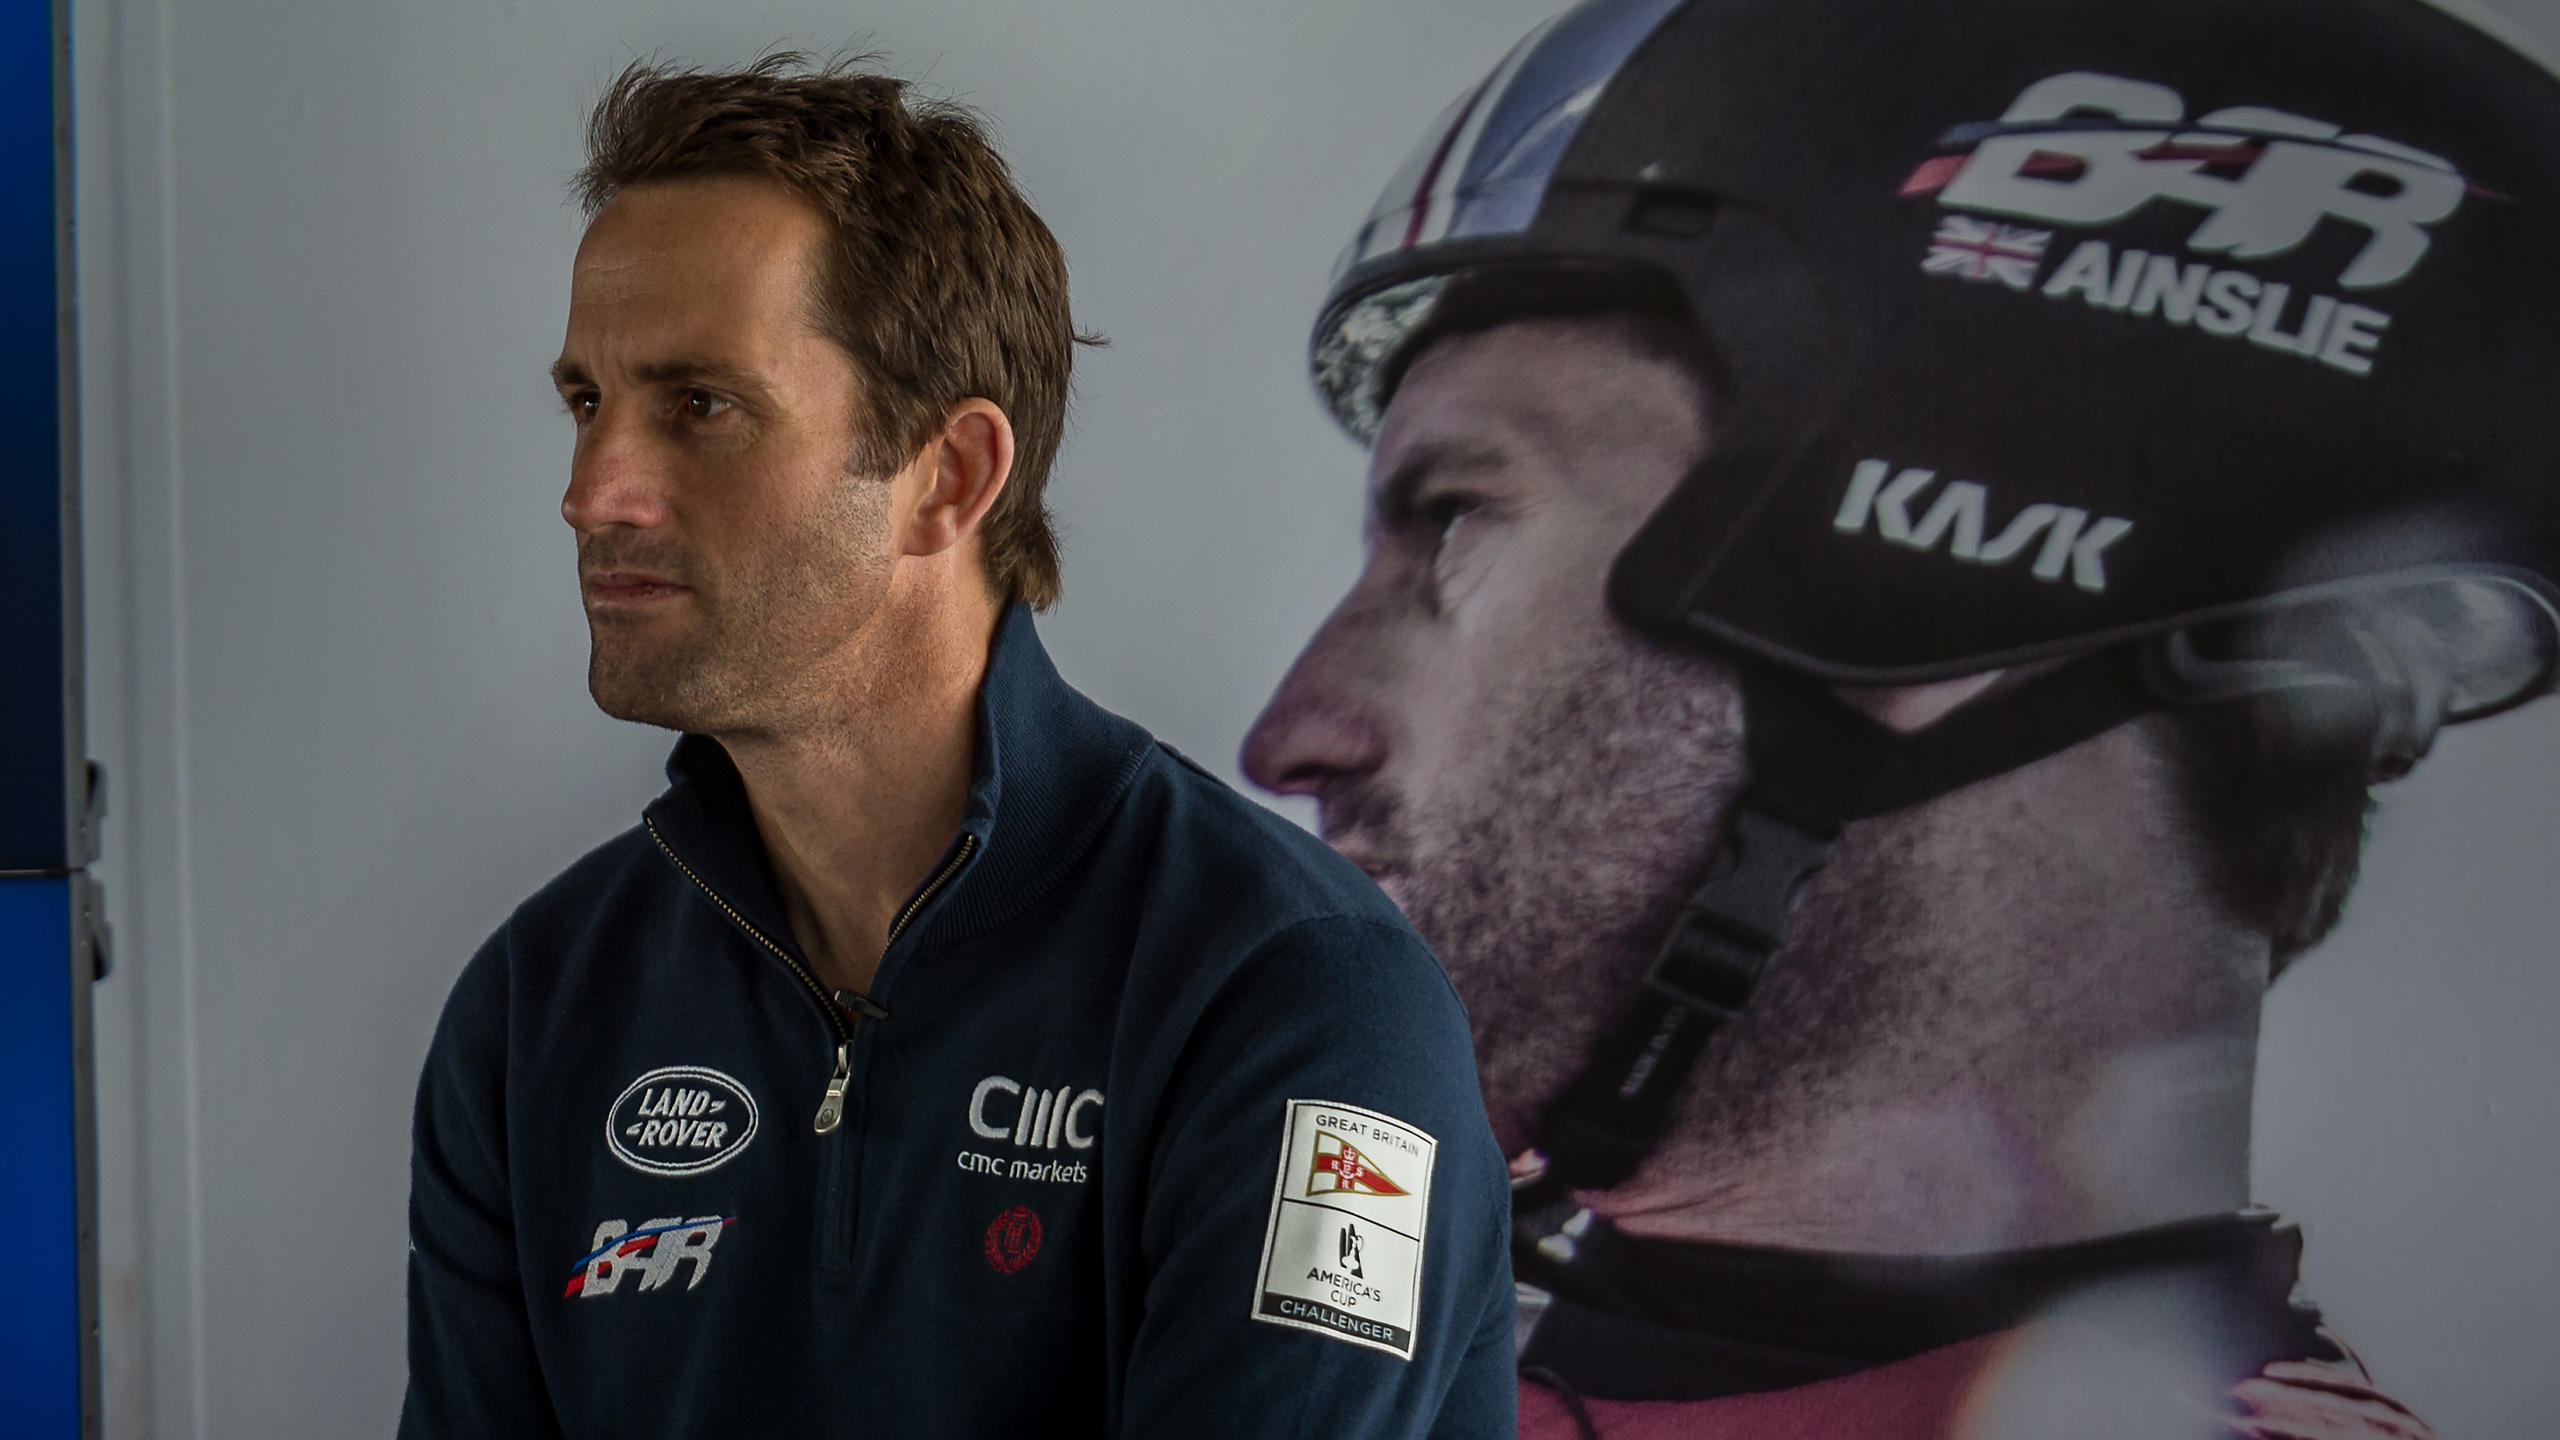 Ben Ainslie at the America's Cup Portsmouth 2015